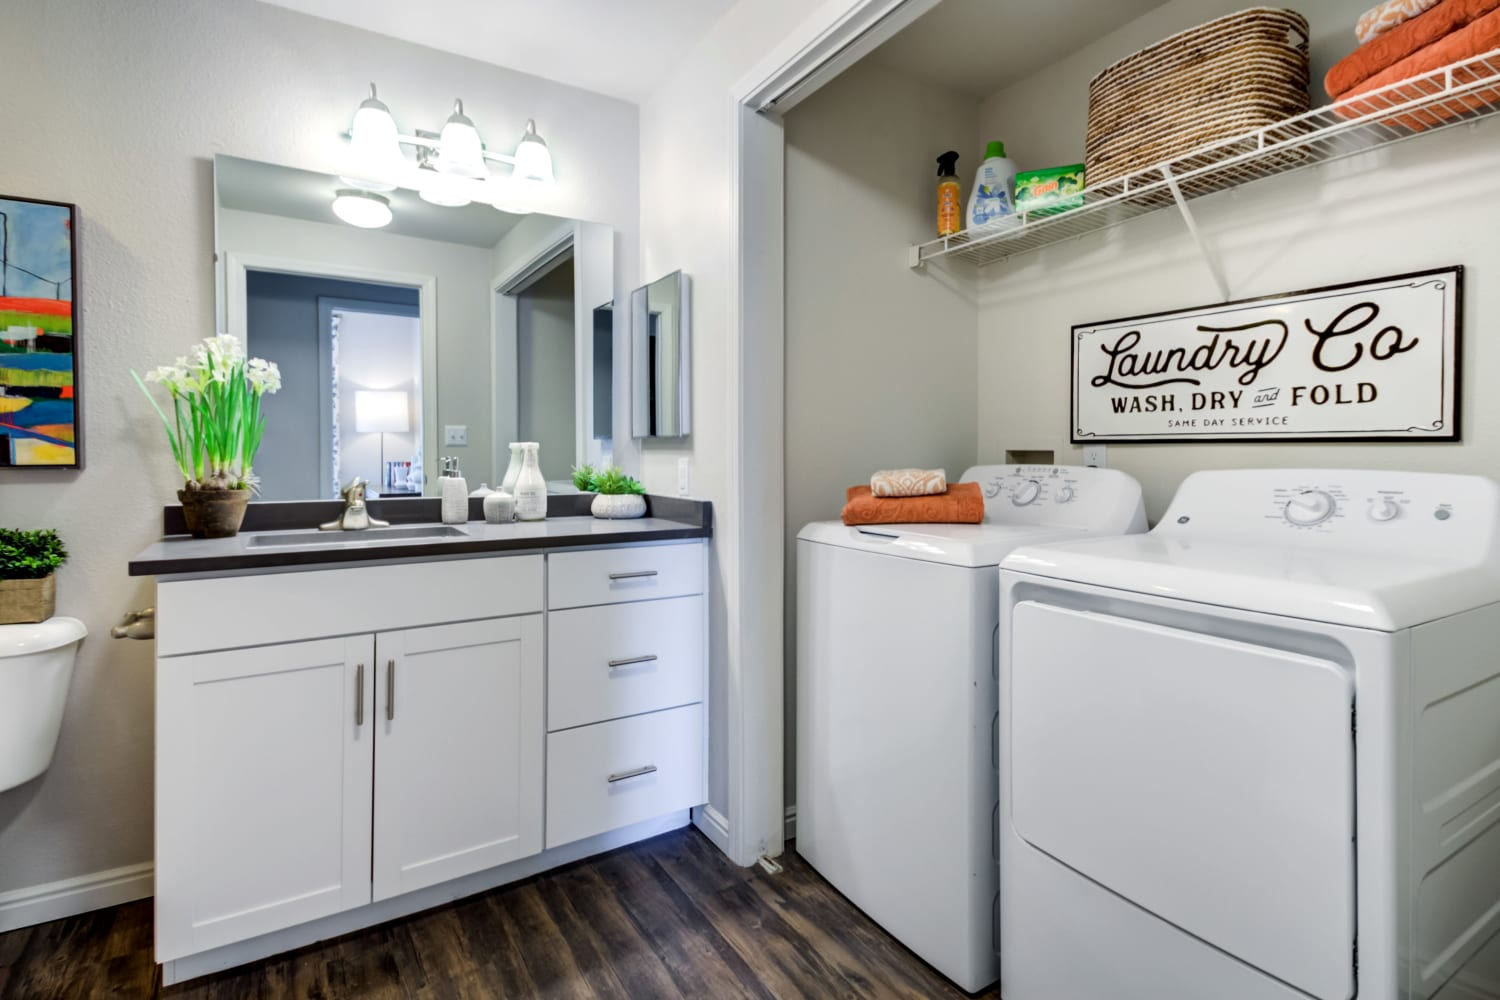 Washer and dryer sharing space inside bathroom in an apartment at Irving Schoolhouse Apartments in Salt Lake City, Utah